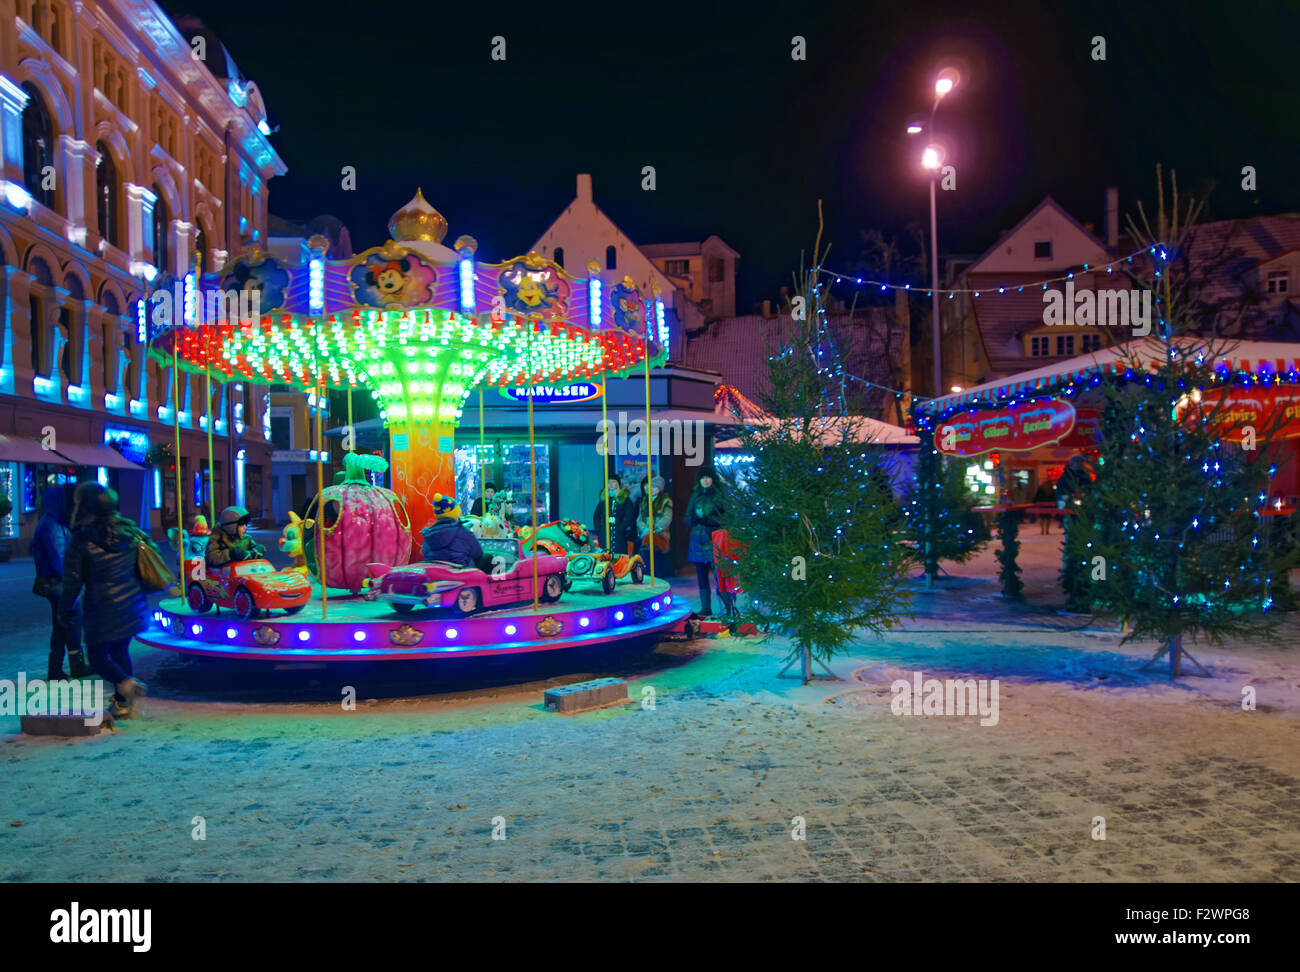 RIGA, LATVIA - DECEMBER 28, 2014: Little kids riding a merry-go-round at the traditional Christmas market in the Stock Photo